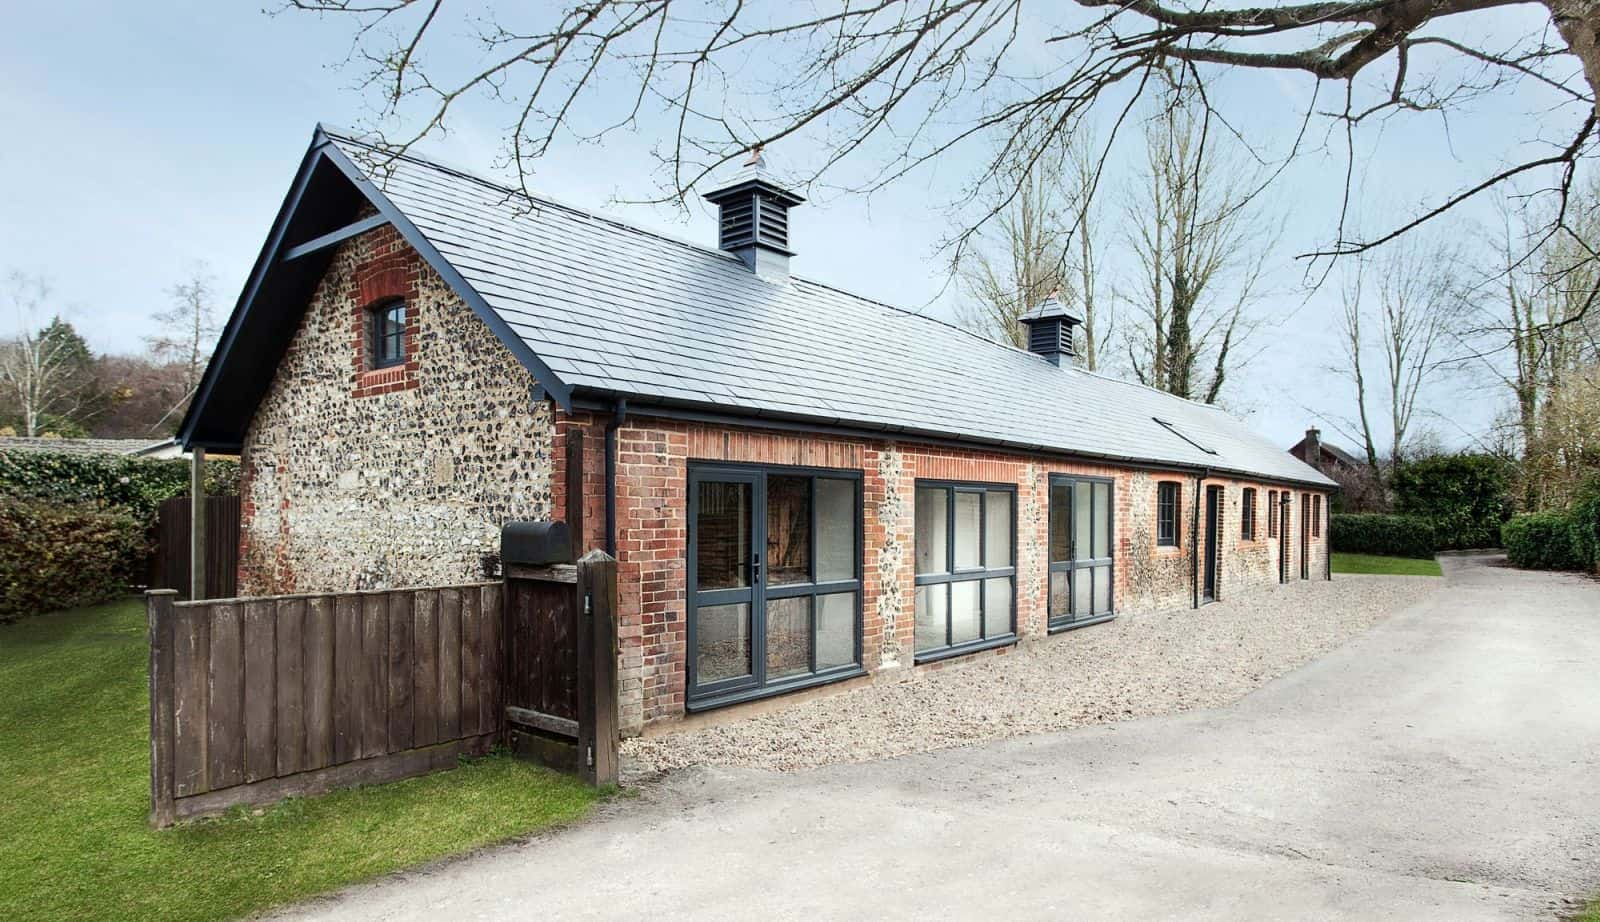 15 barn home ideas for restoration and new construction - New home construction ideas ...